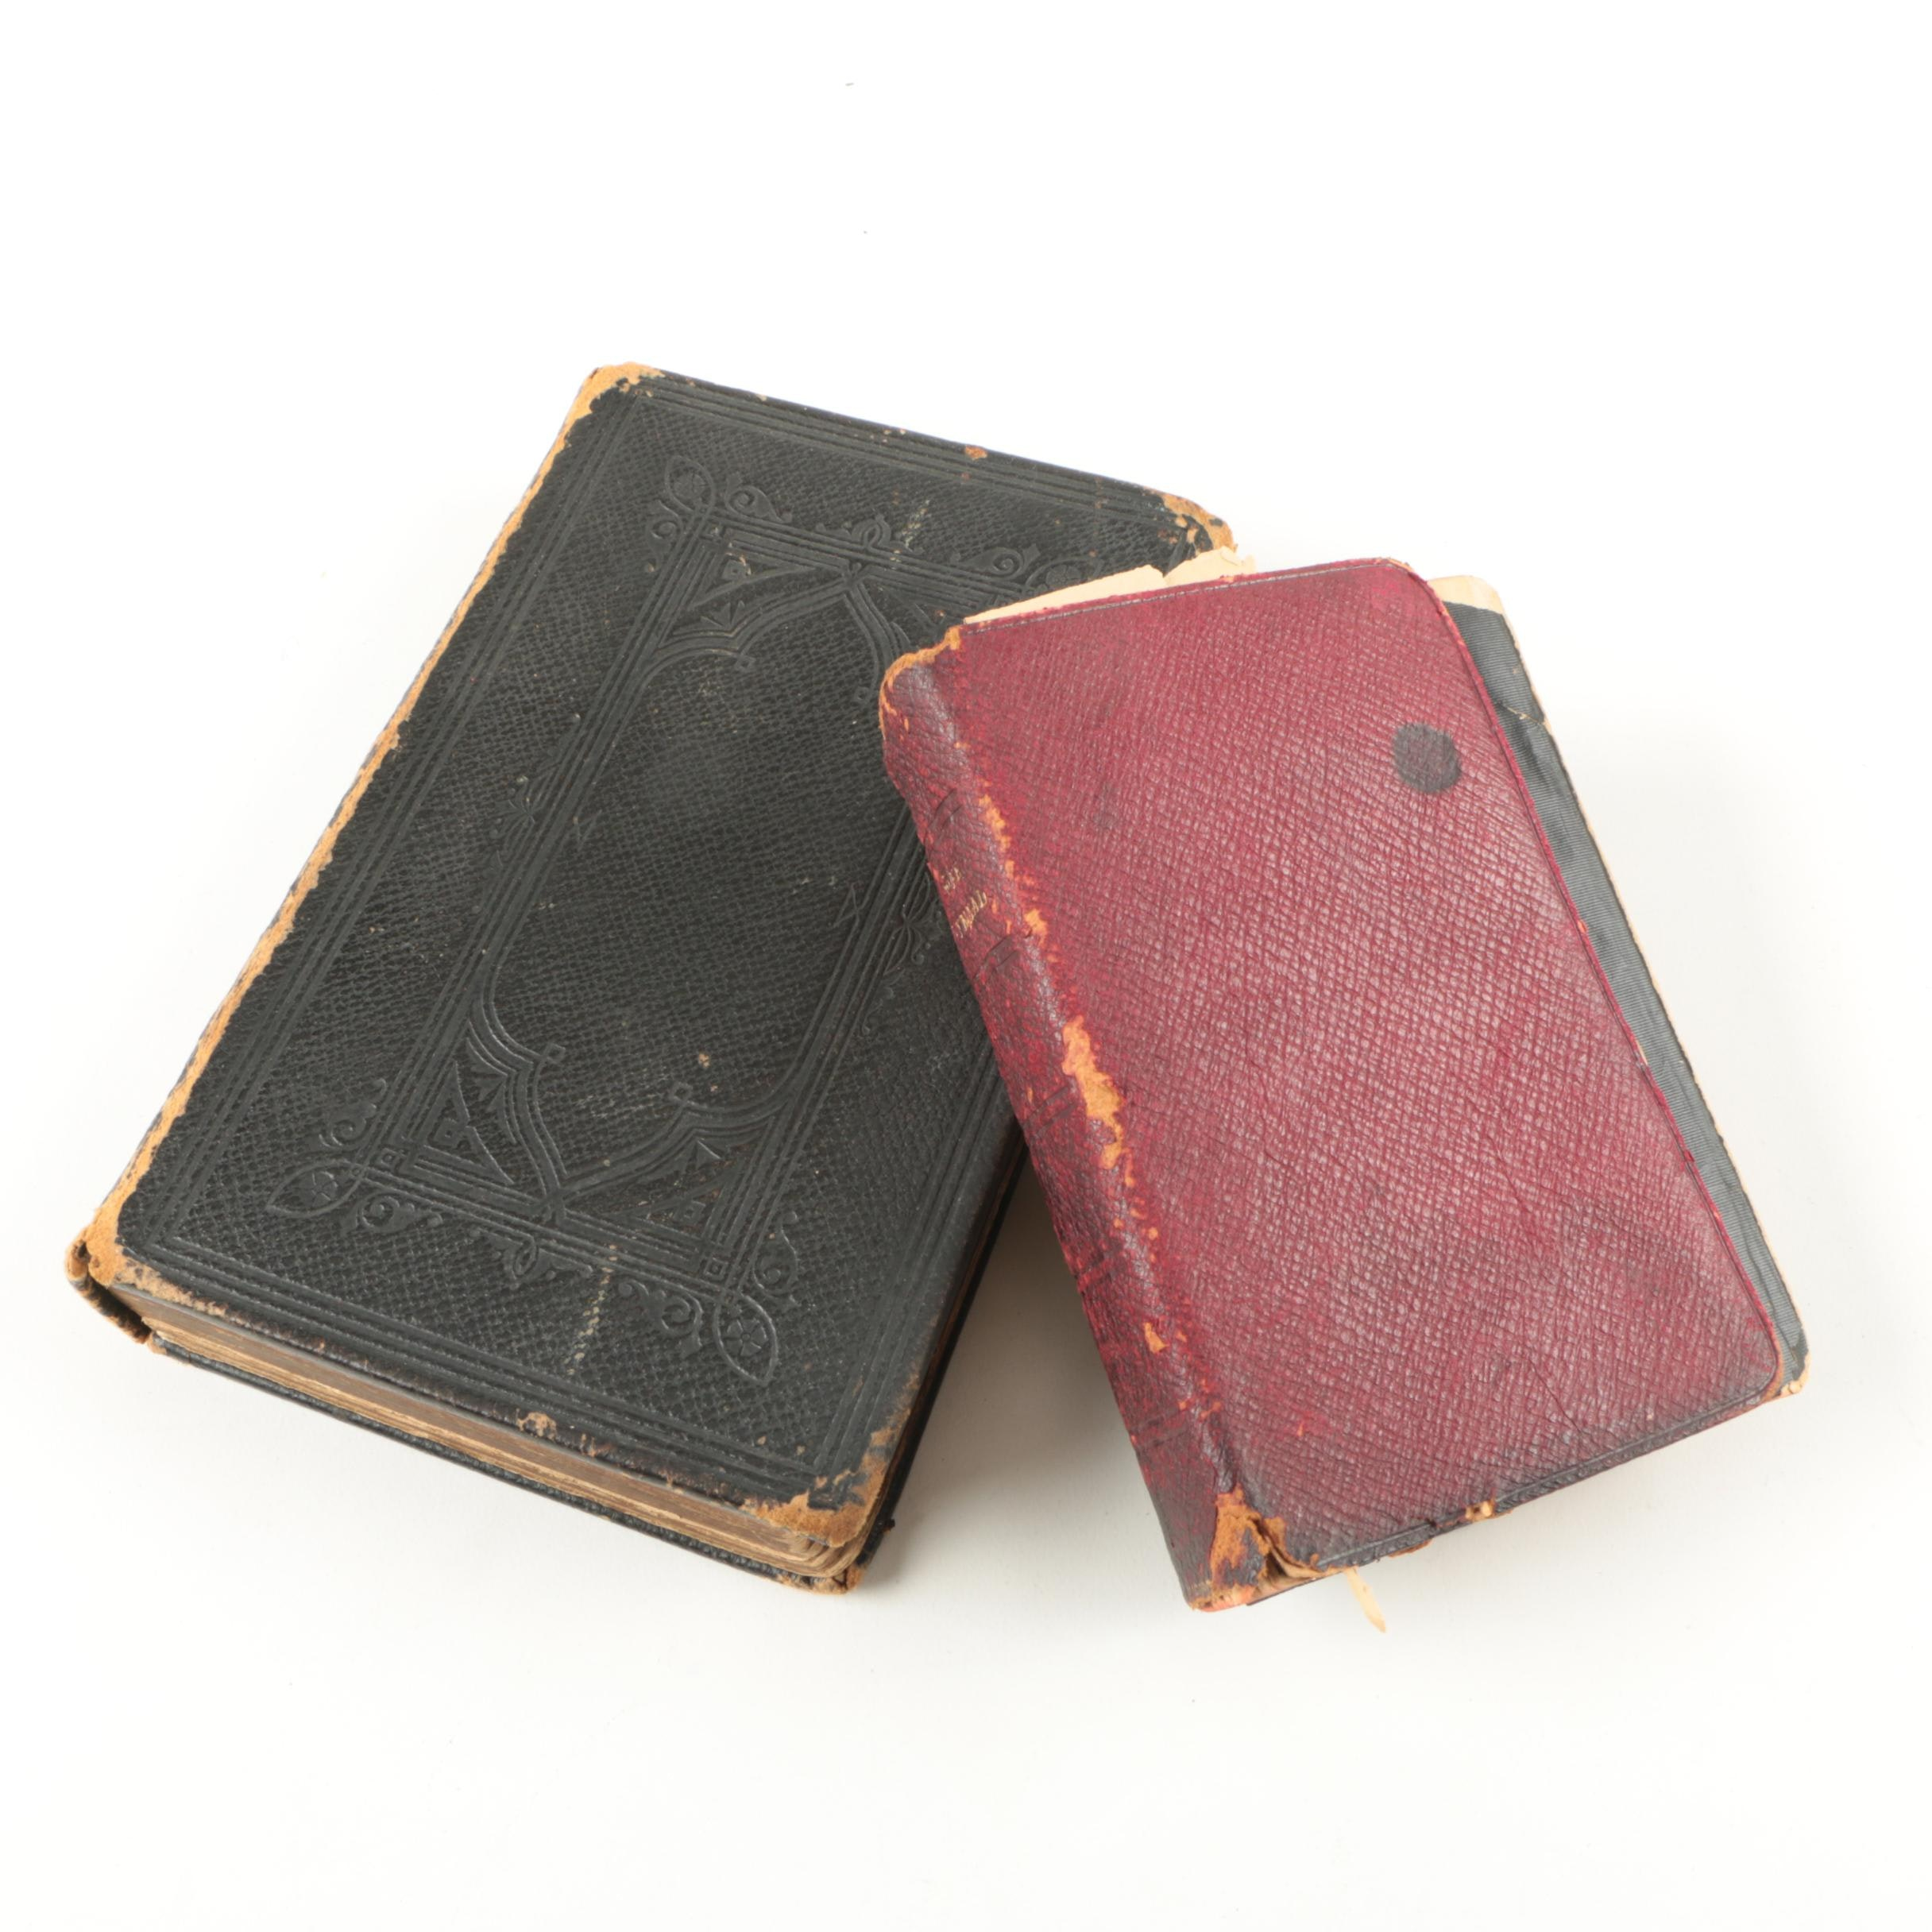 Pair of Antique Bibles